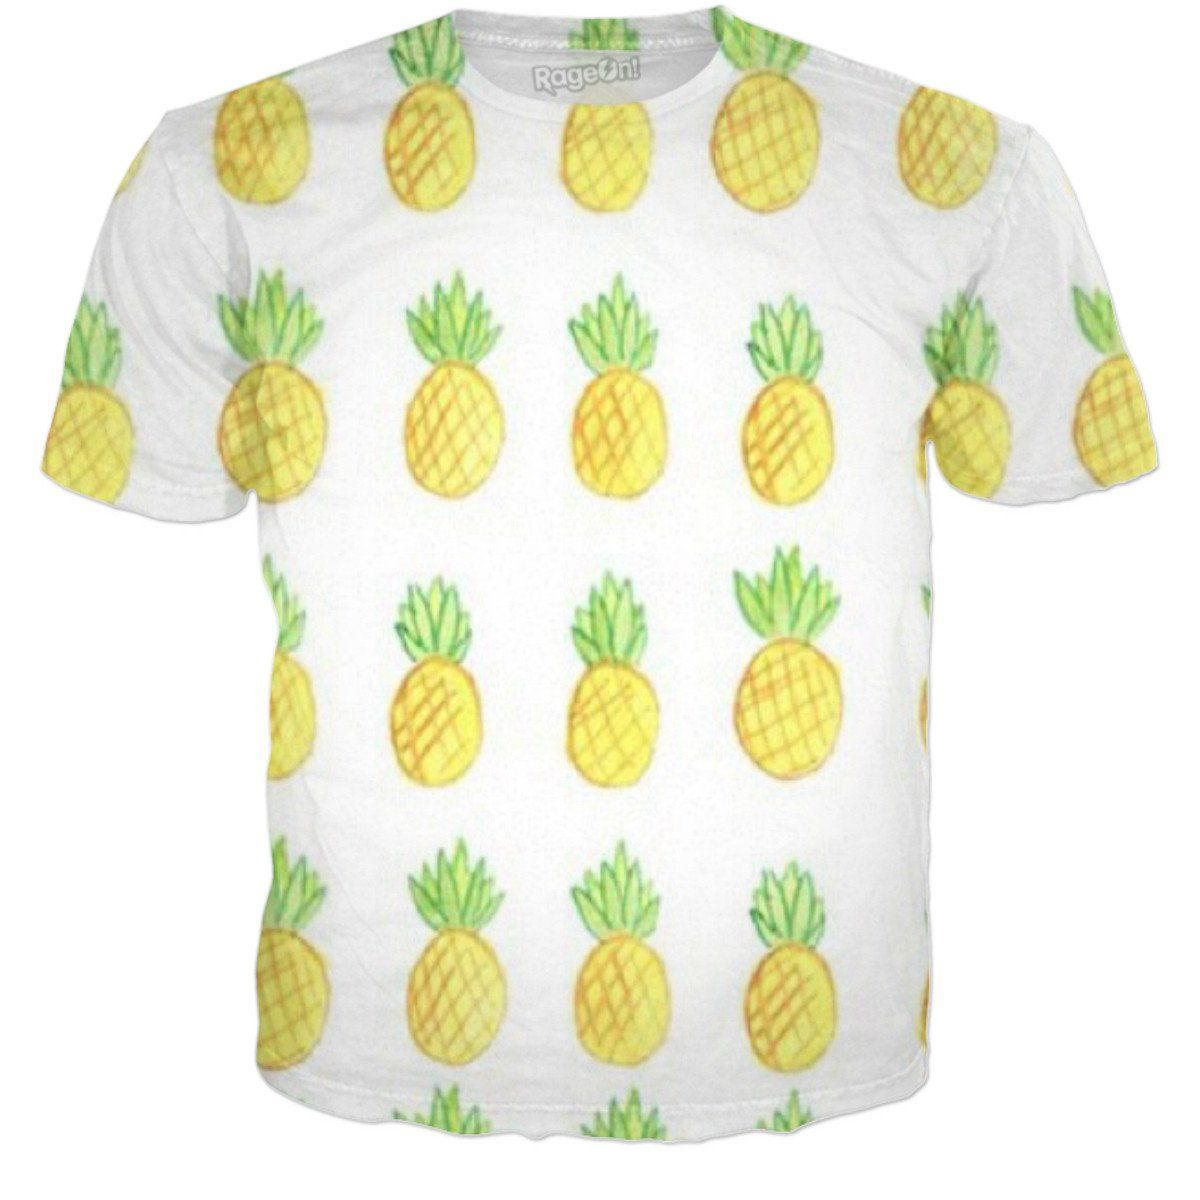 Pineapple is refreshing and so are all of these products. These are great for summer!!! May the pineapple be with you!!! #follow #followforfollow #like #likeforlike #buyit #purchase